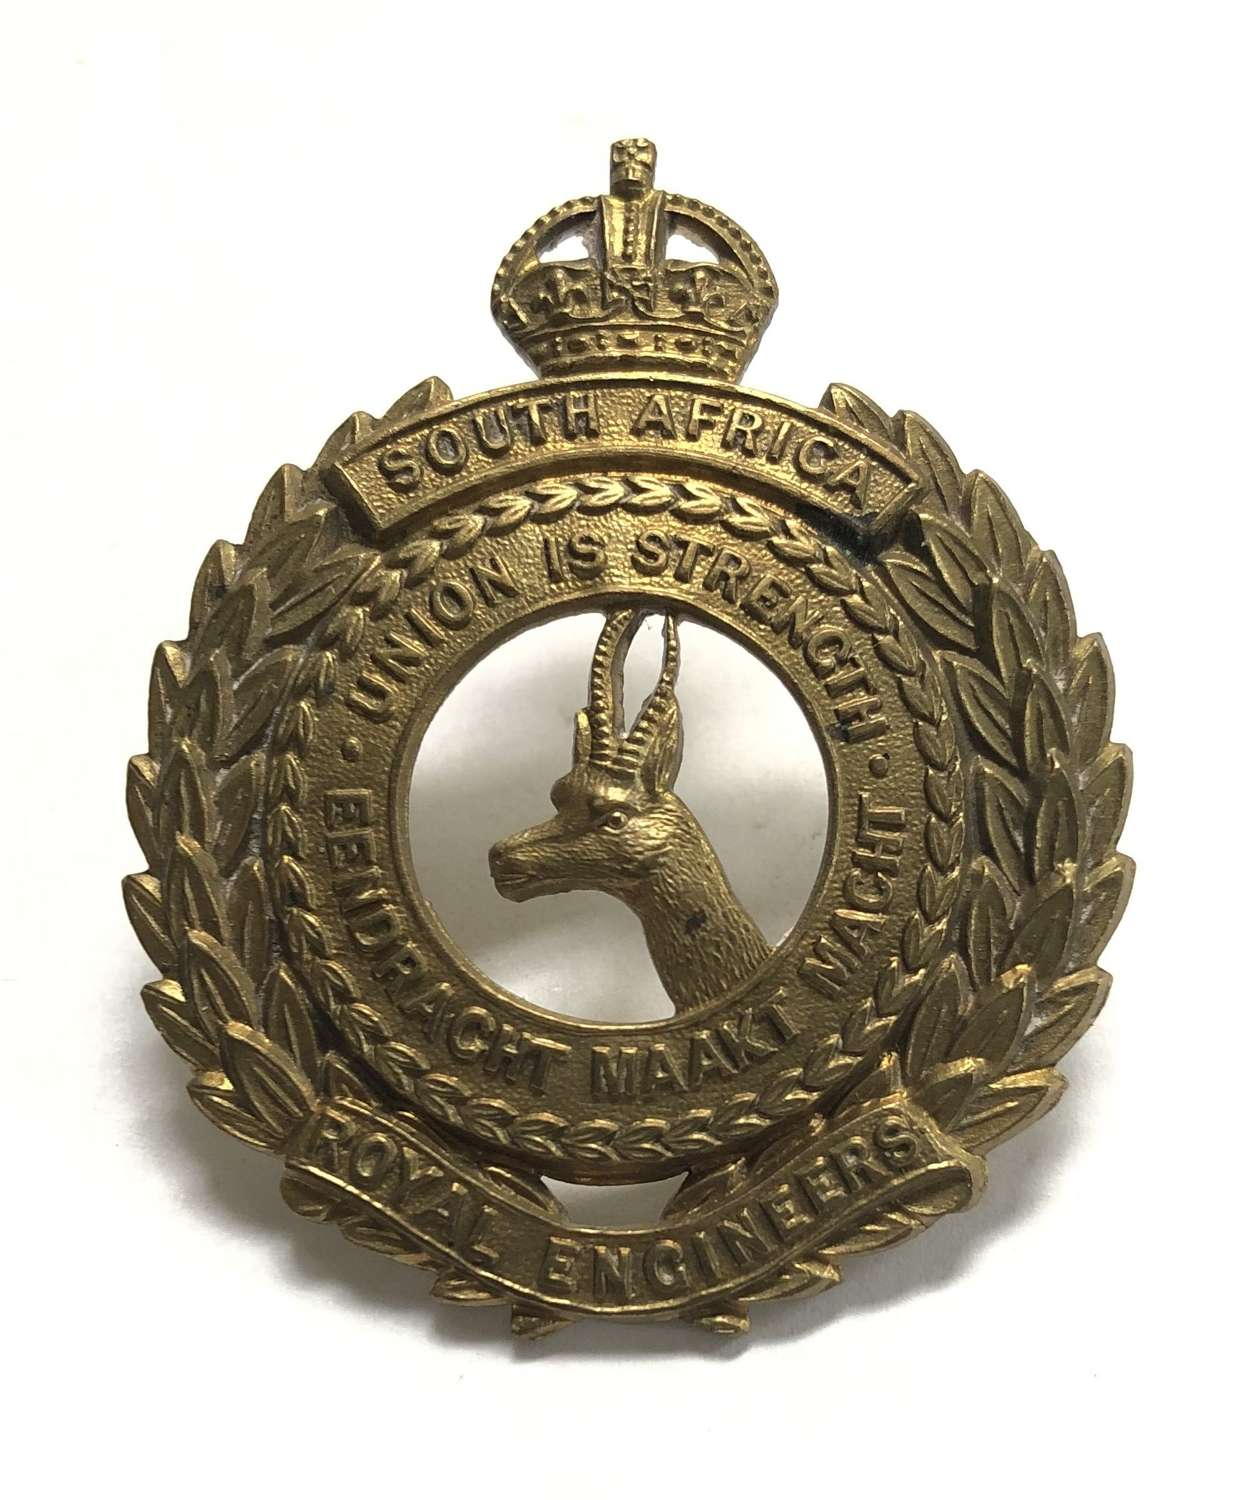 South African Royal Engineers brass cap badge circa 1916-18 by Gaunt